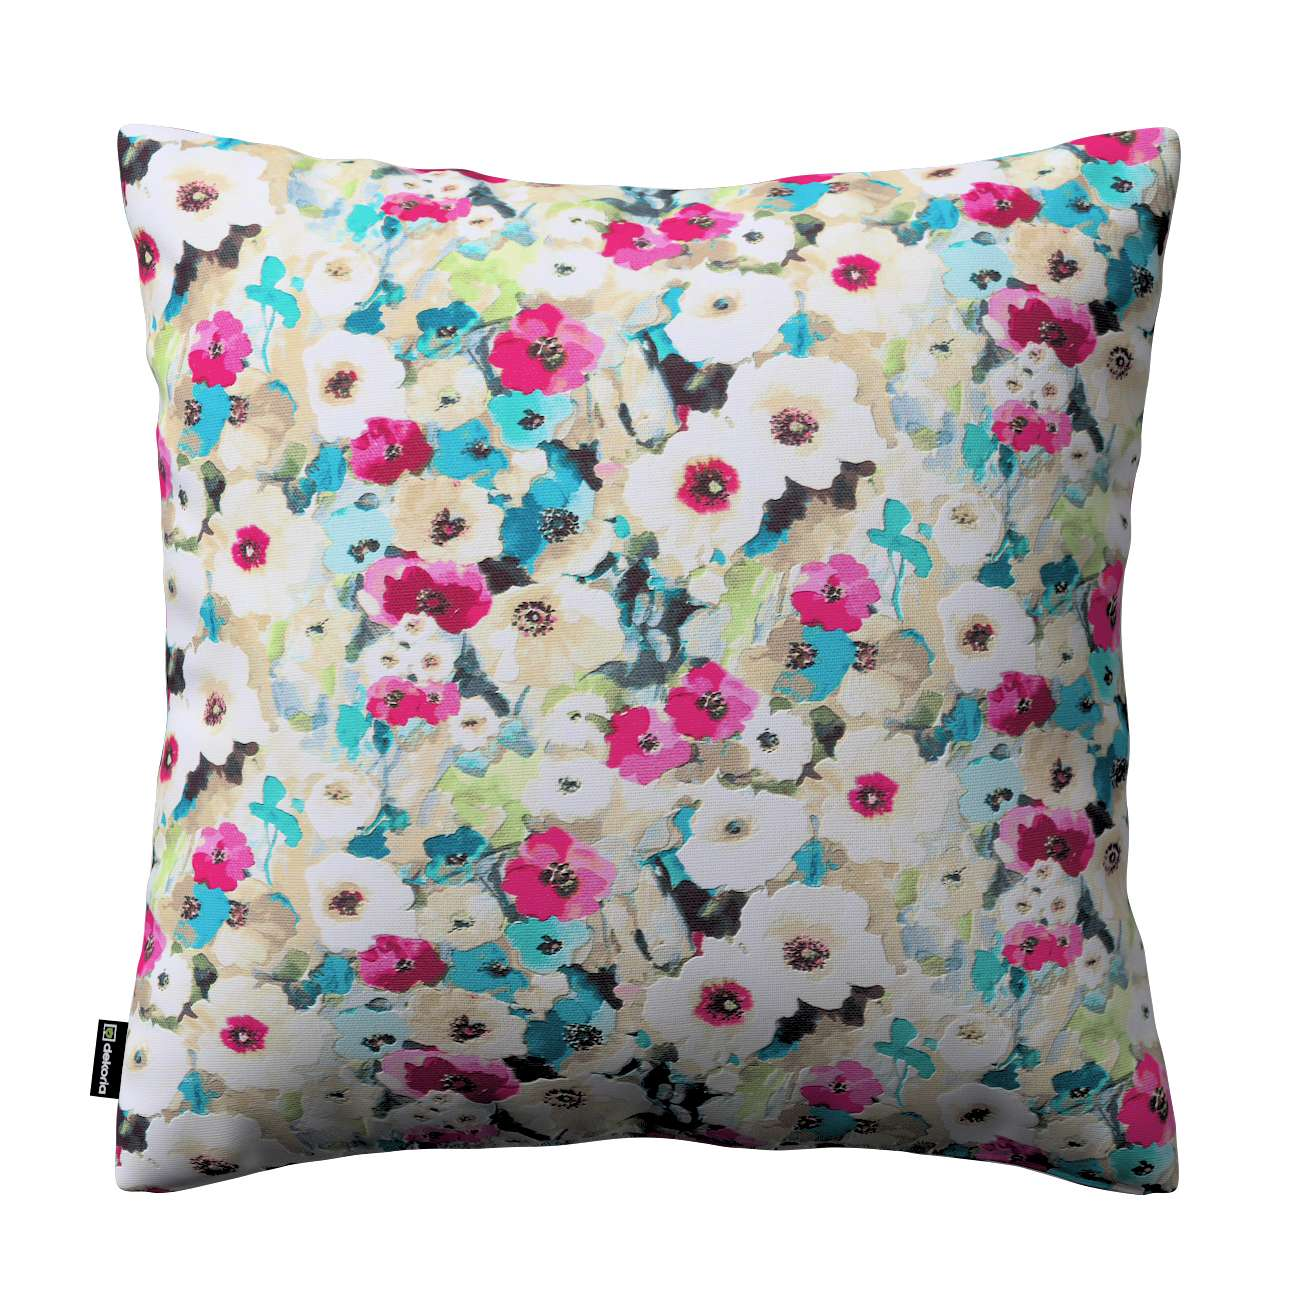 Kinga cushion cover 43 × 43 cm (17 × 17 inch) in collection Monet, fabric: 140-10